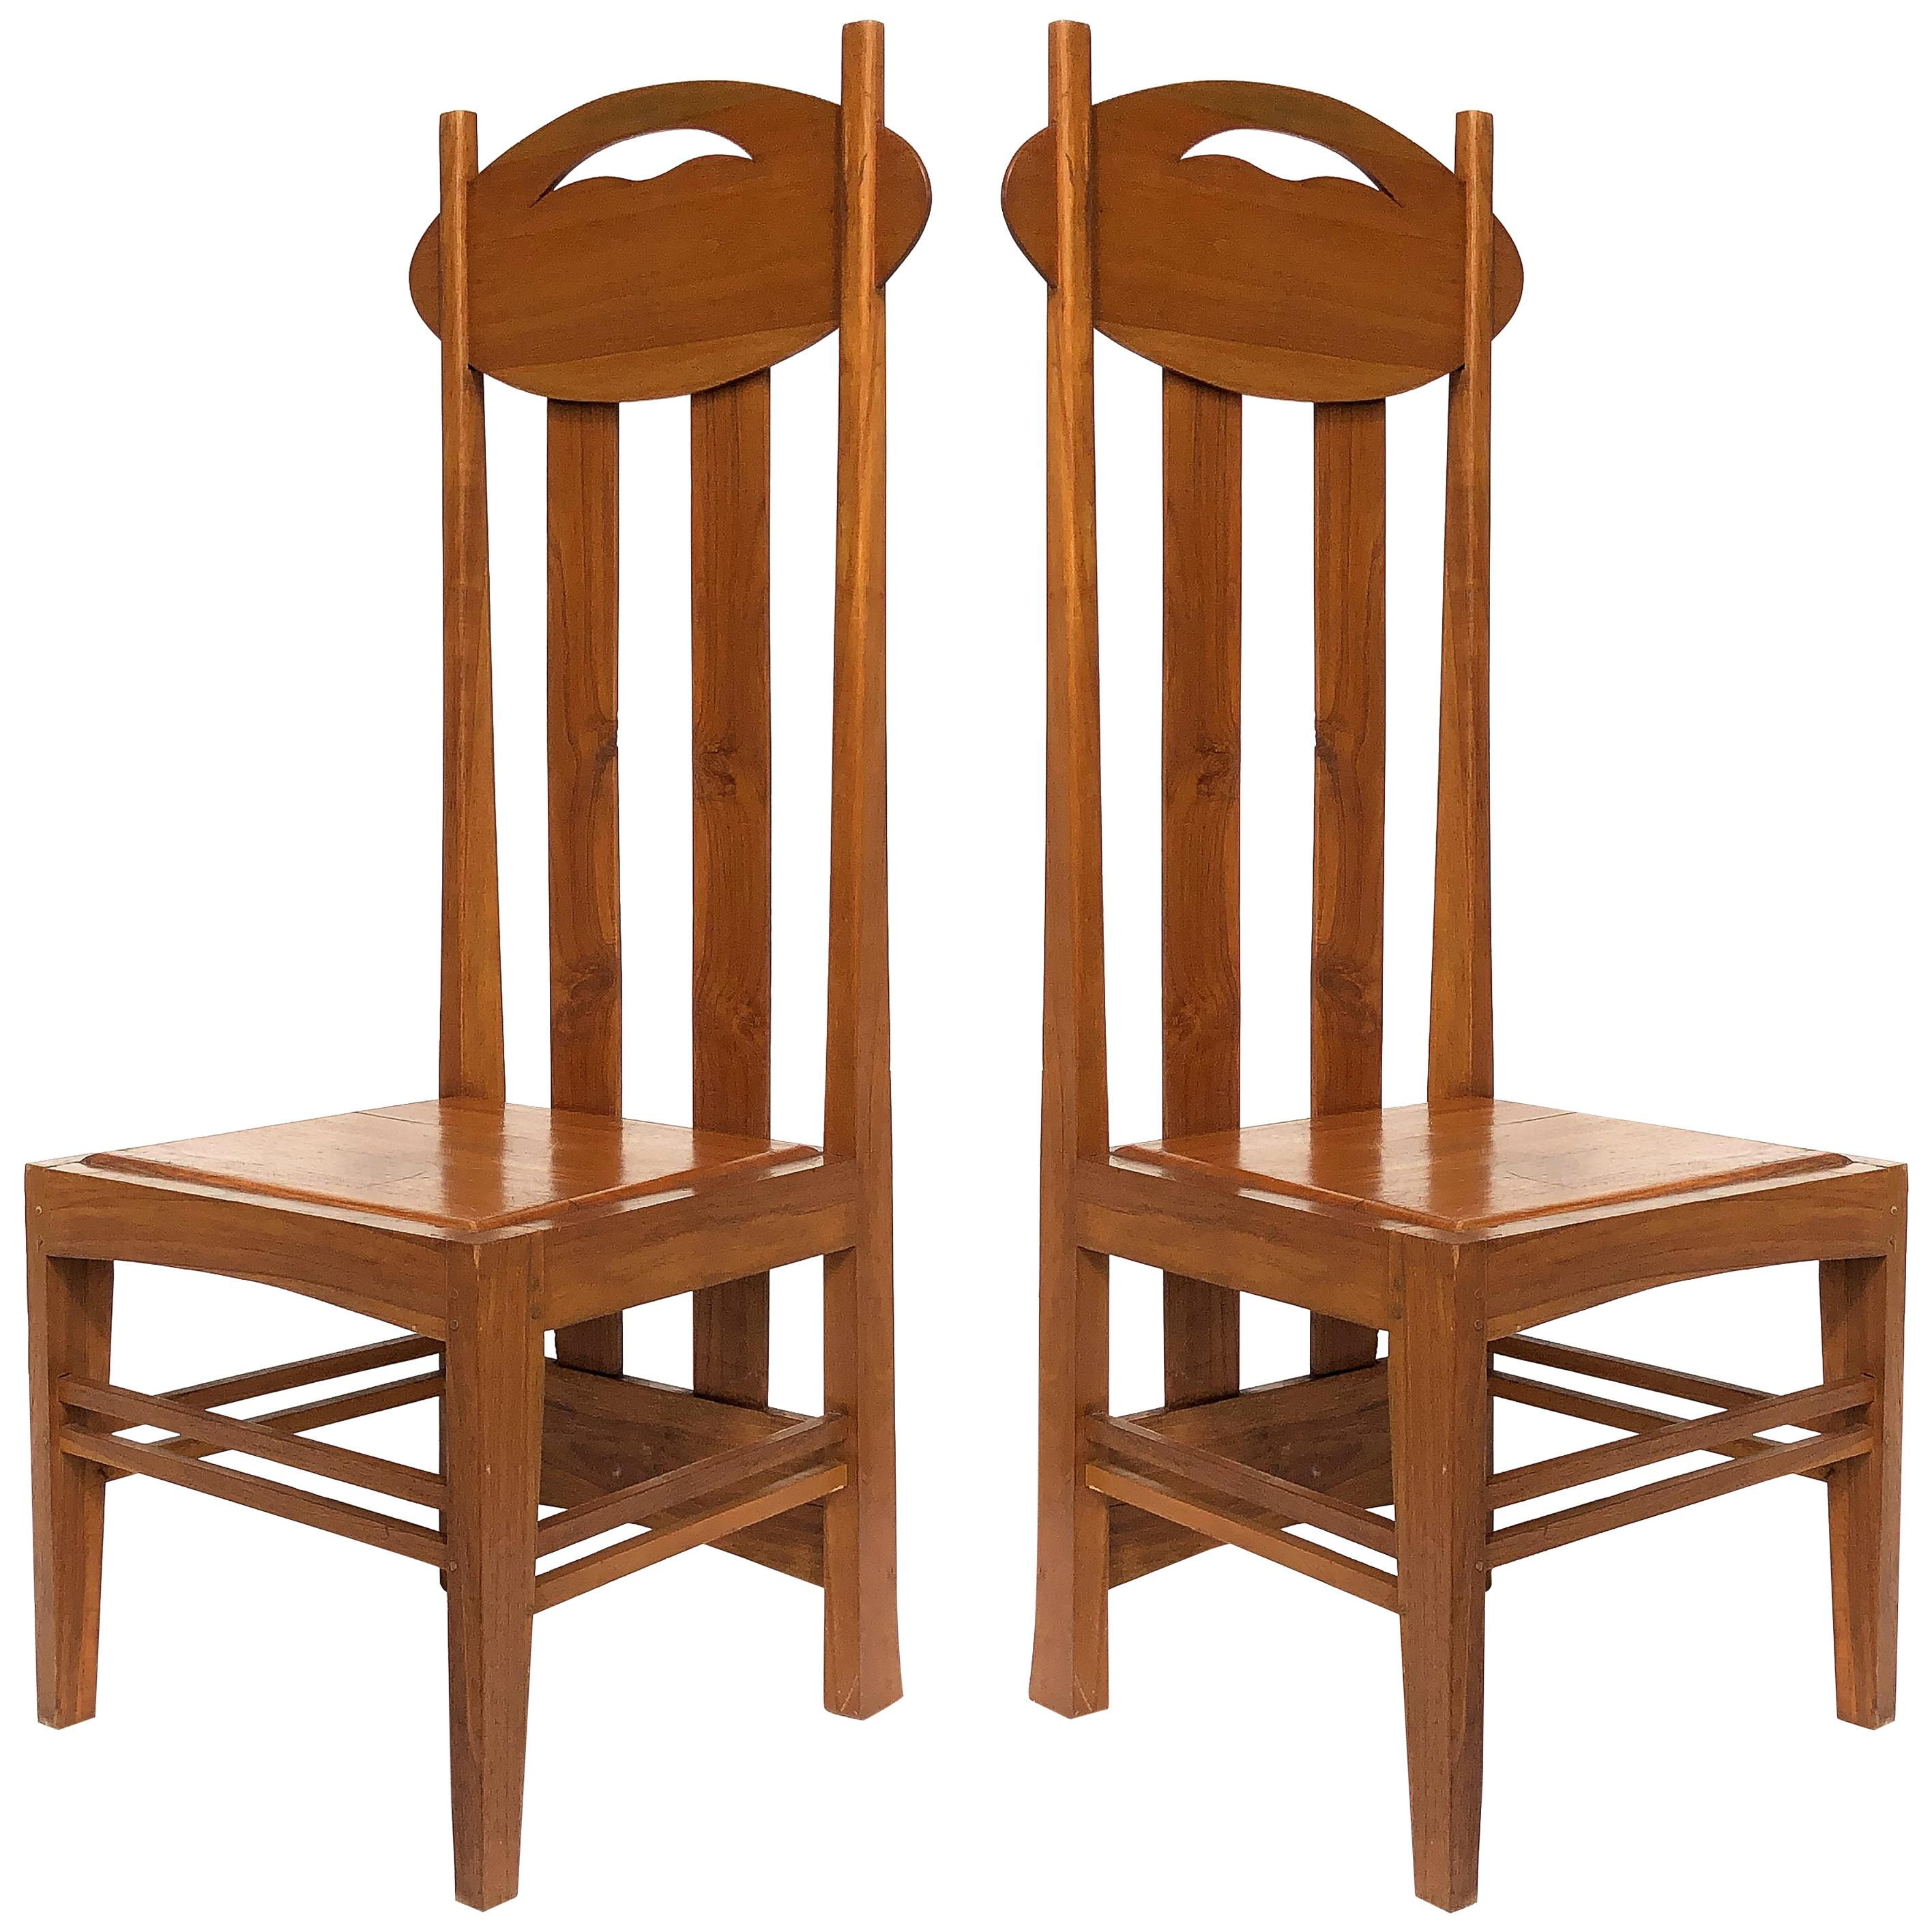 1970s Charles Rennie Mackintosh High-Back Chairs, Pair